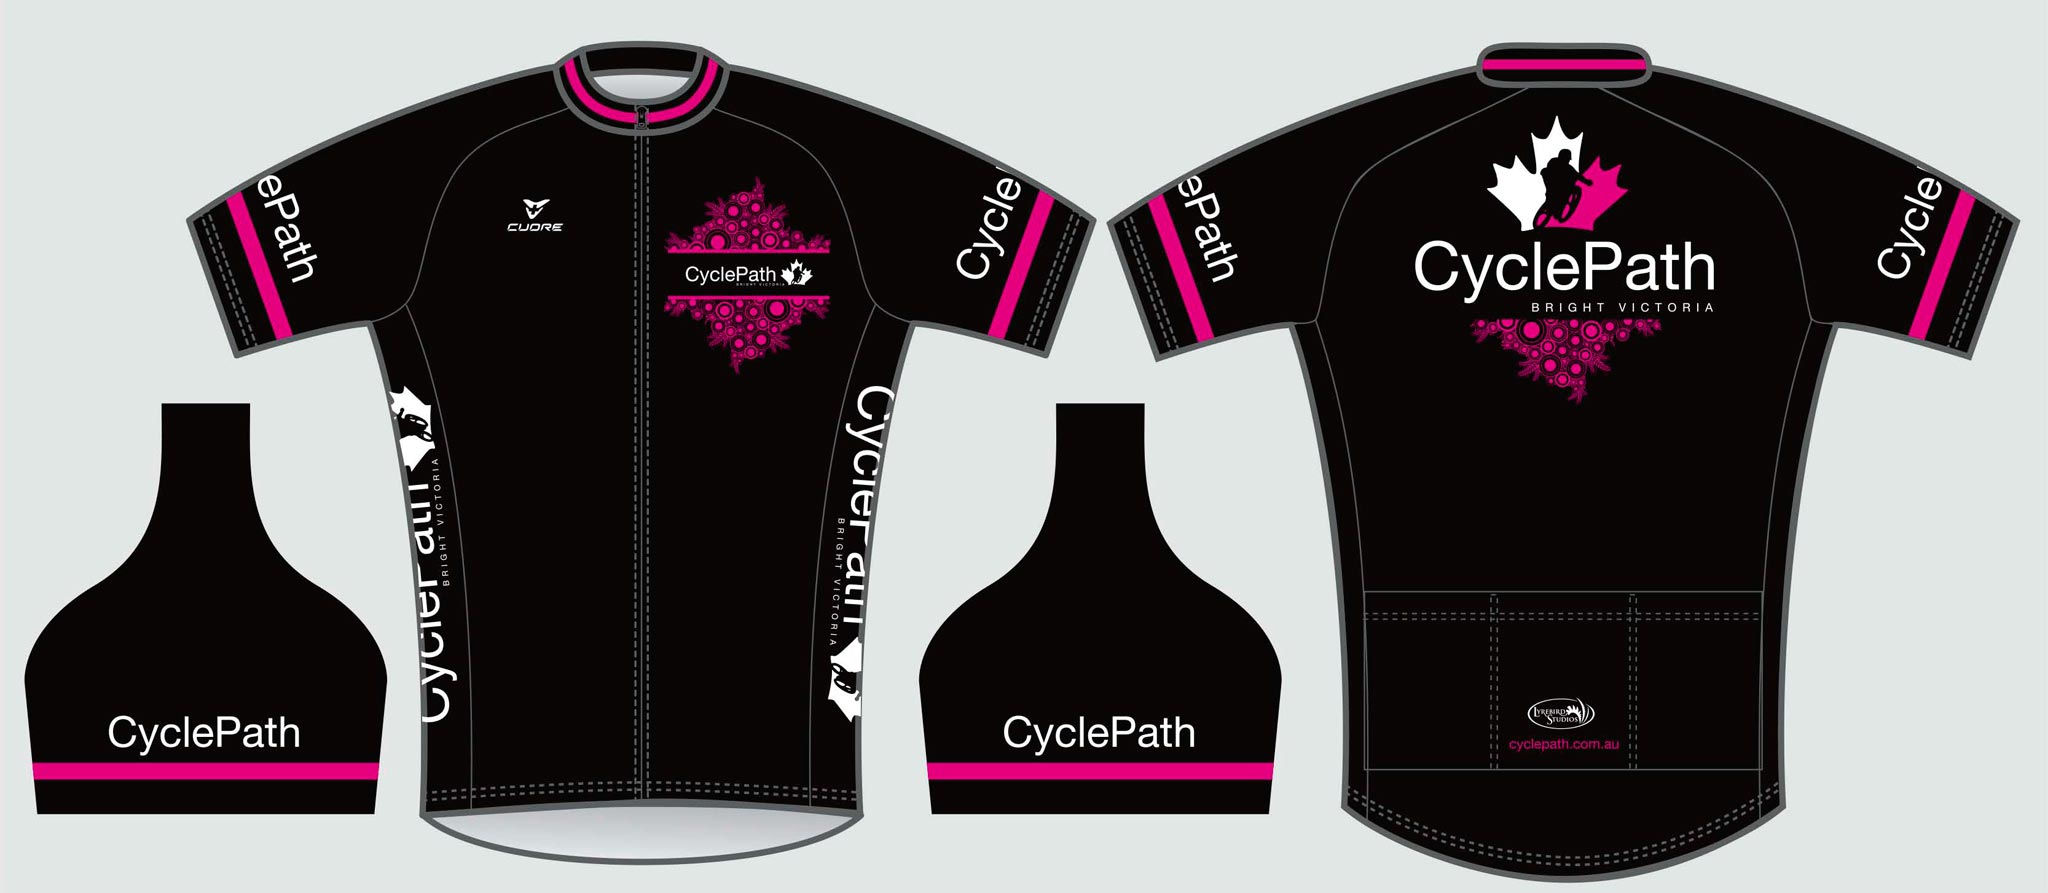 Another cycling jersey design for CyclePath, this time for the ladies.